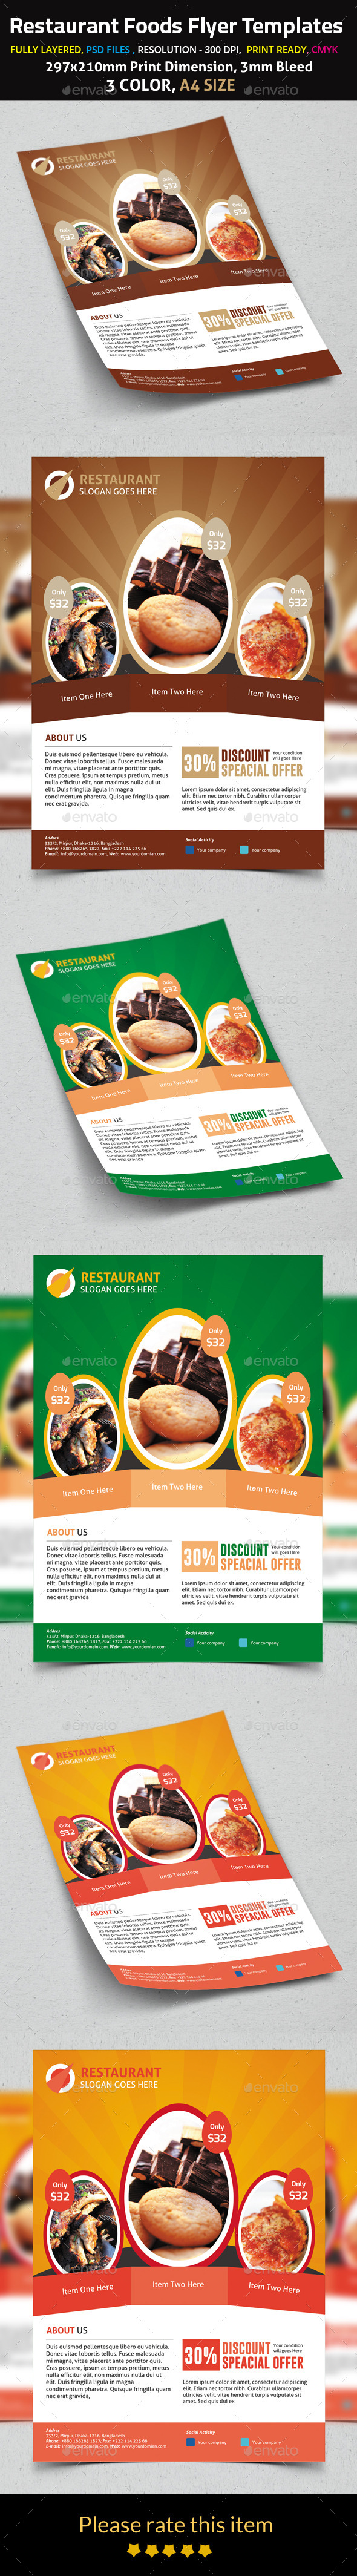 Restaurant Foods Flyer Templates - Restaurant Flyers